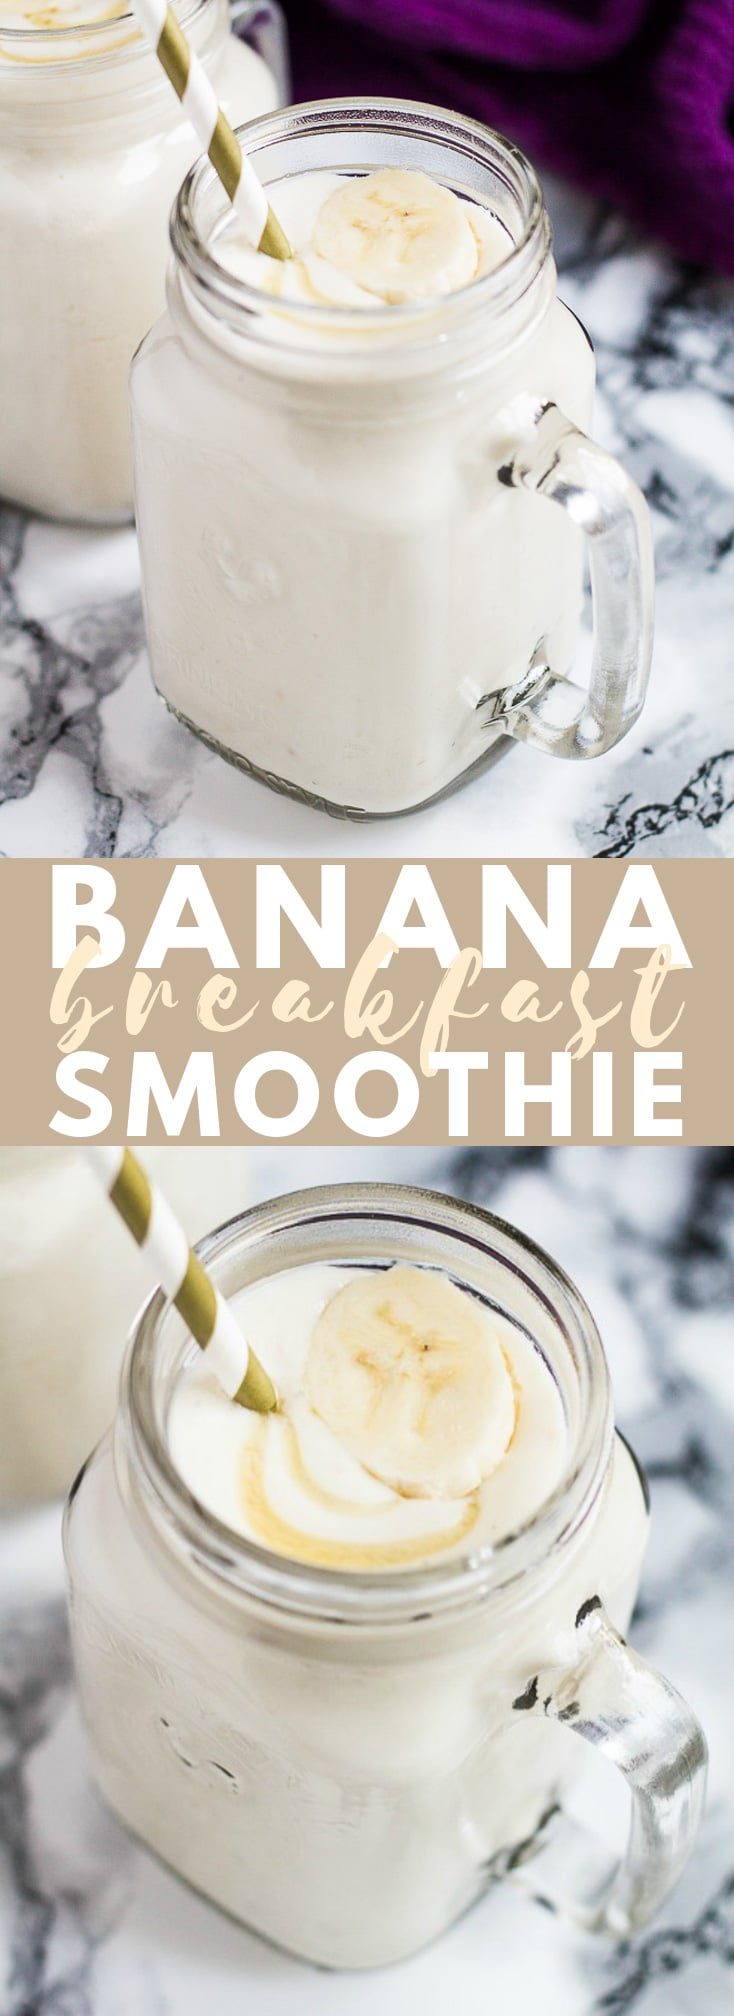 Banana Breakfast Smoothie – Deliciously thick and creamy banana smoothie, that is super healthy and made from only 4 ingredients – the perfect smoothie for breakfast!